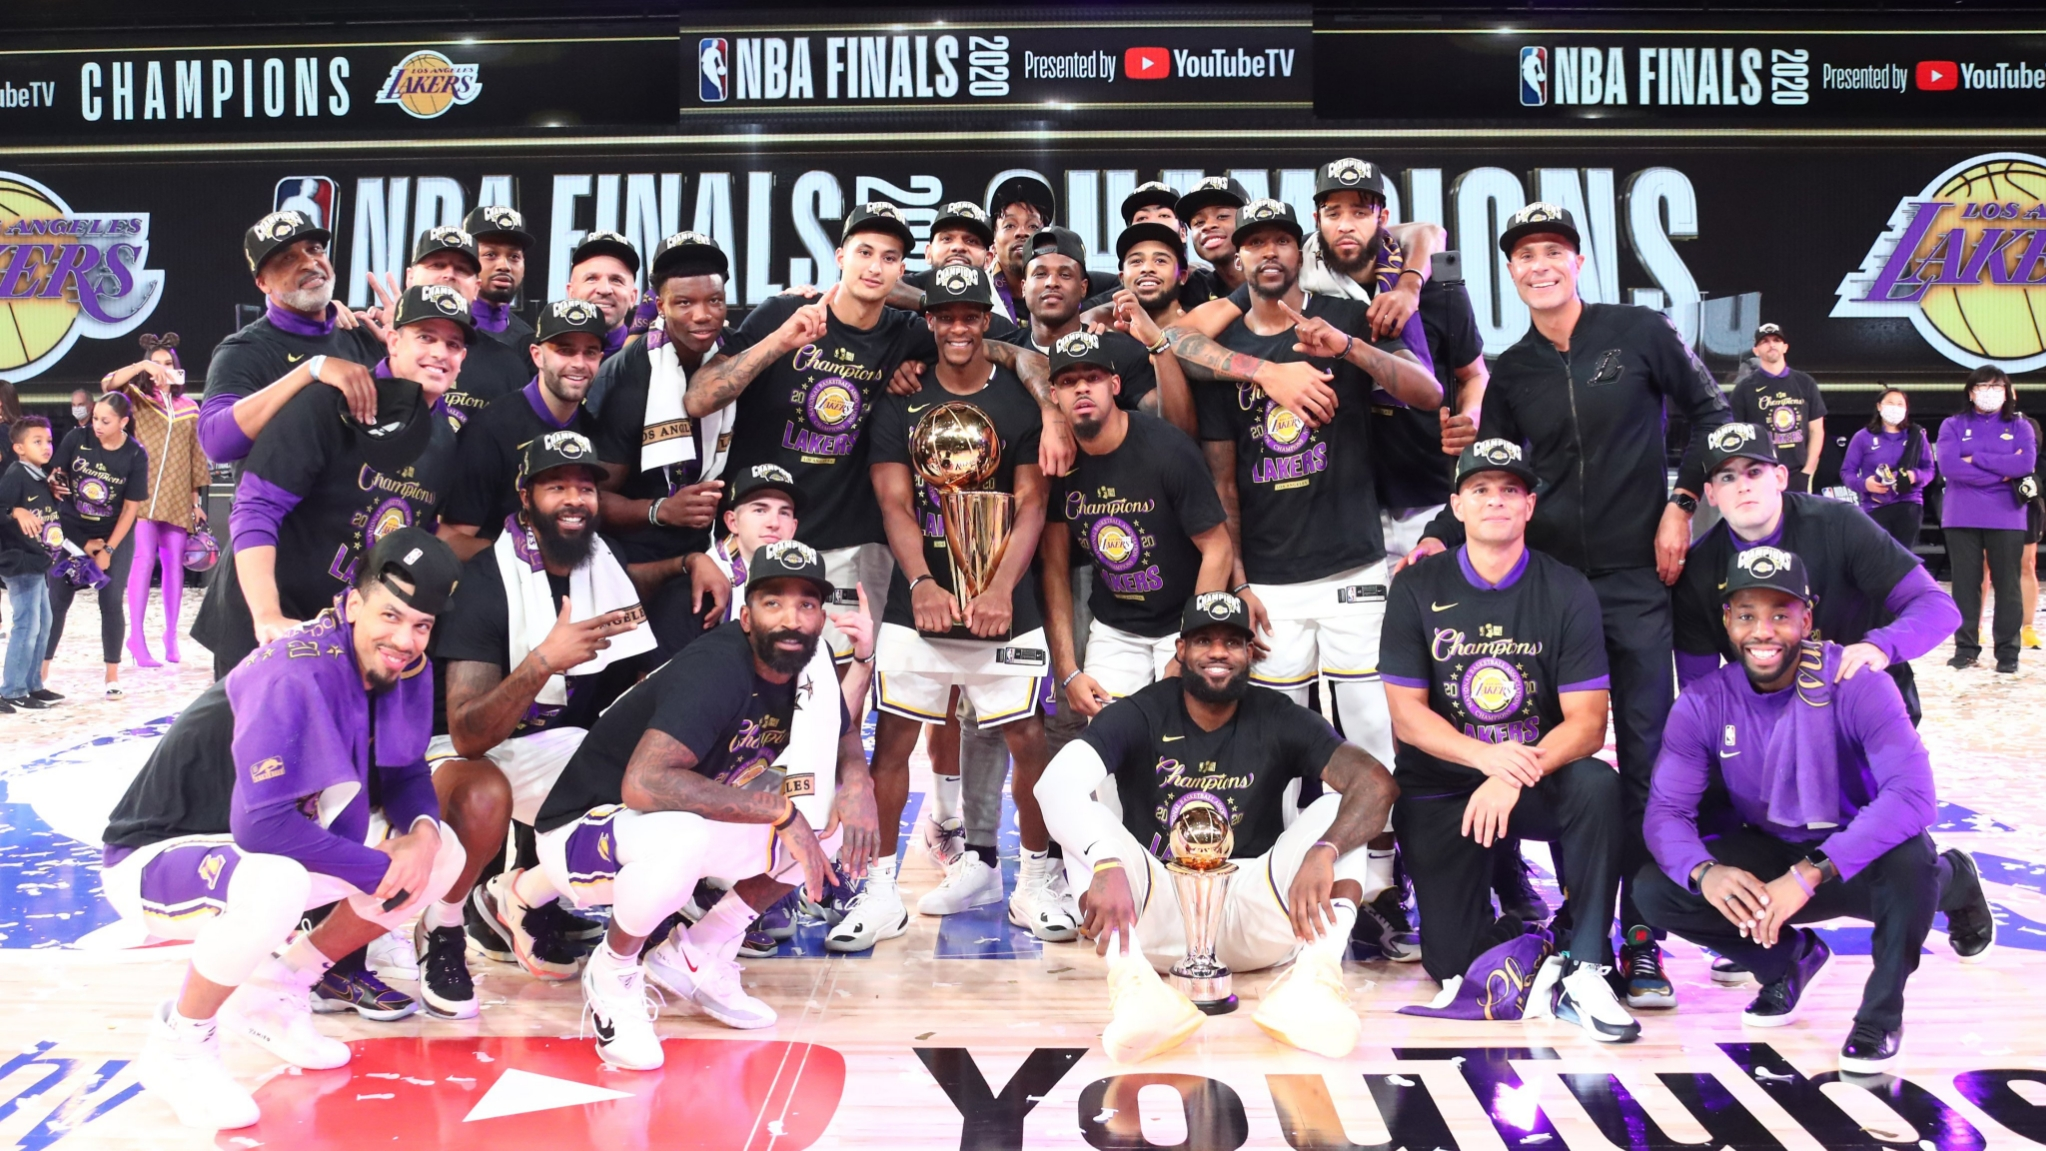 VIDEO/ LeBron James MVP i finaleve, Lakers kampionë të NBA